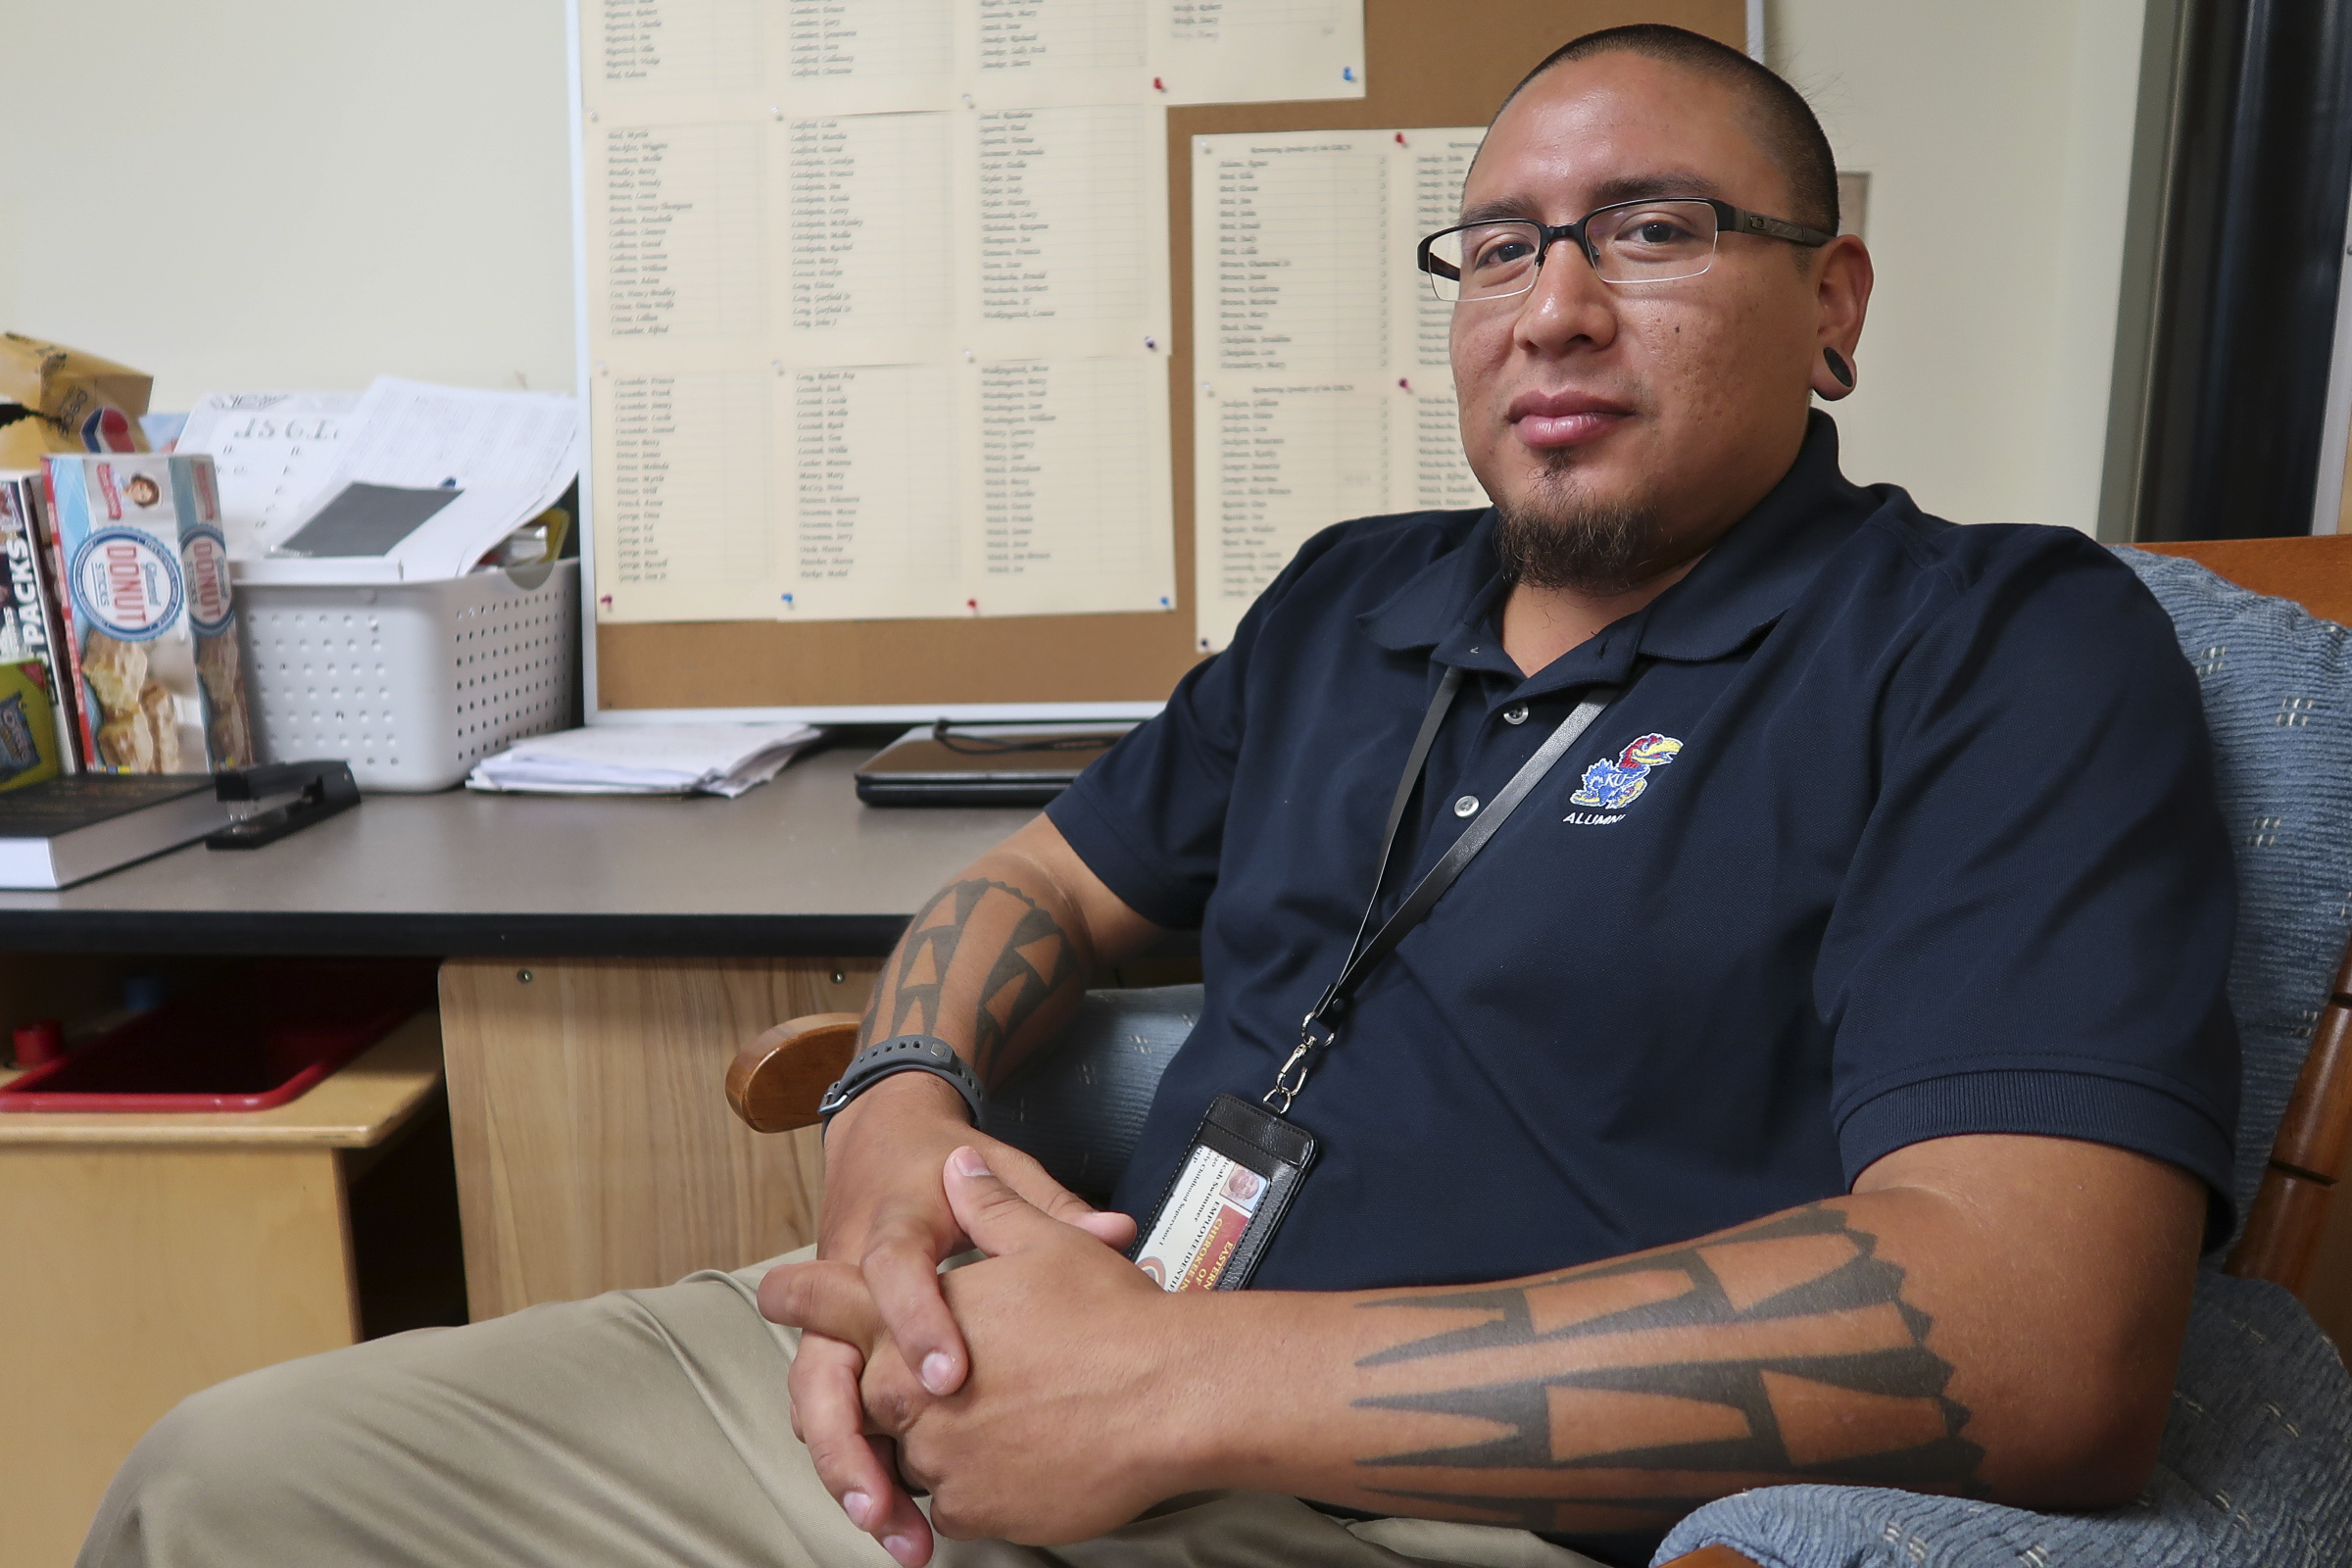 To Save Their Endangered Language, 2 Cherokee Brothers Learn As They Teach